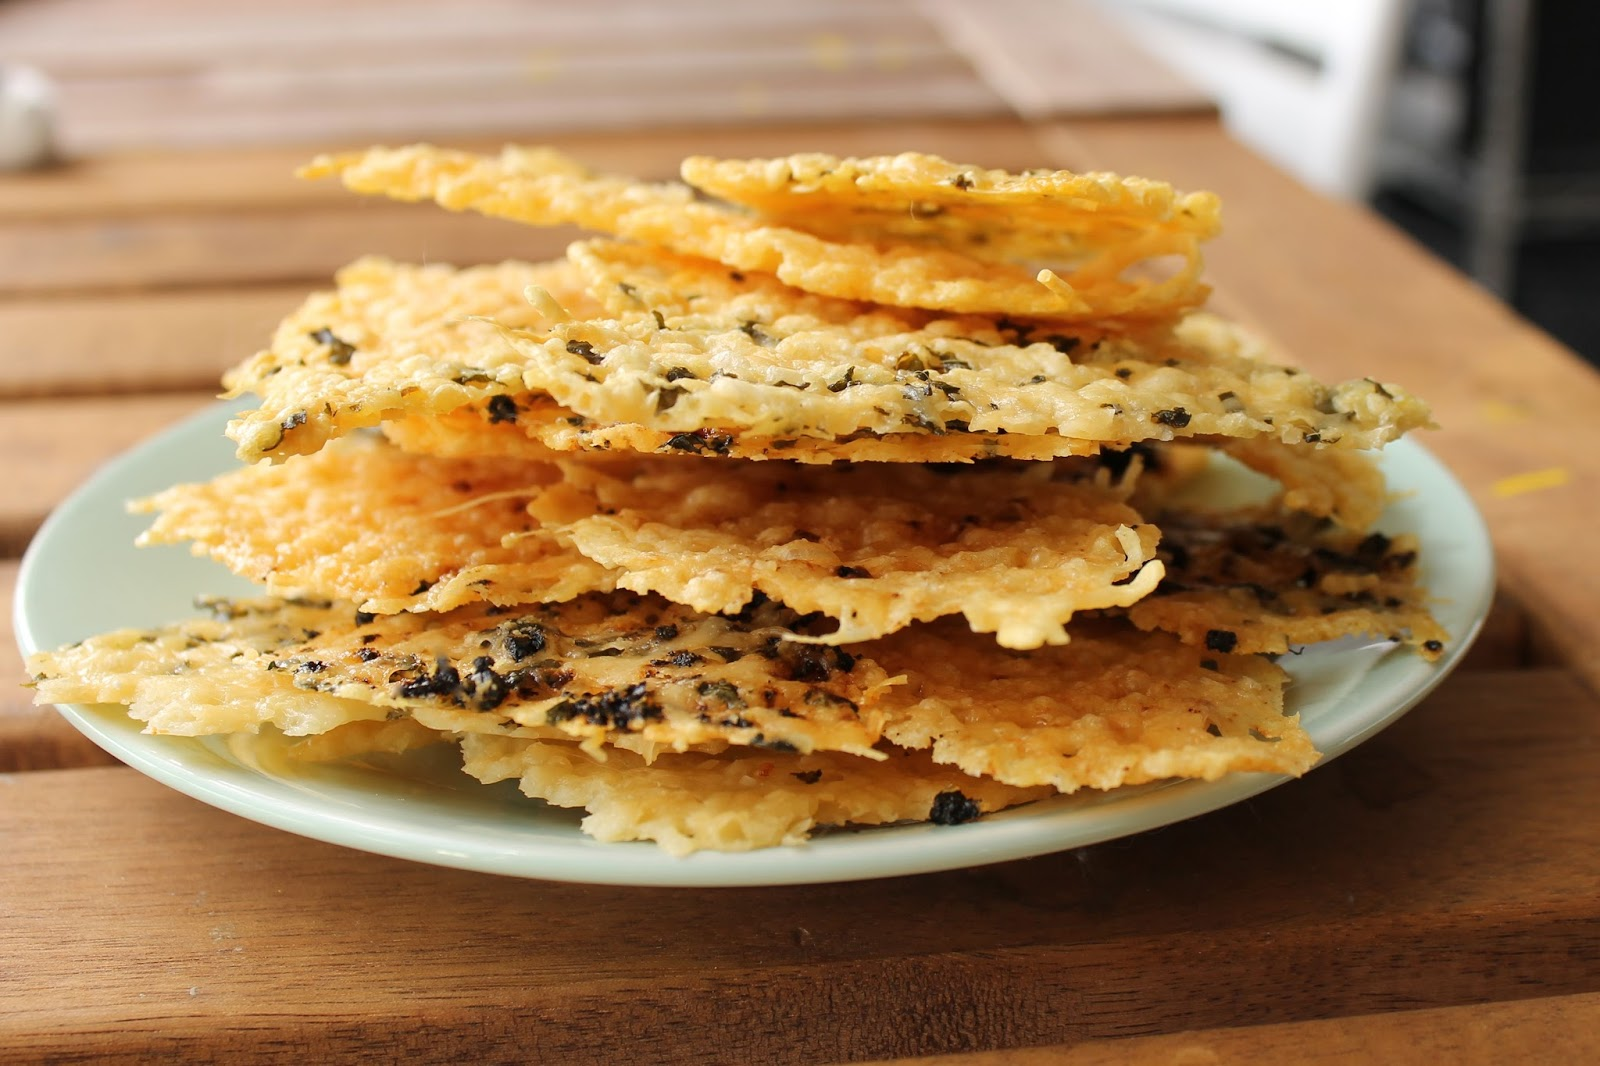 ... show you how to whip up some parmesan crisps yum parmesan crisps are